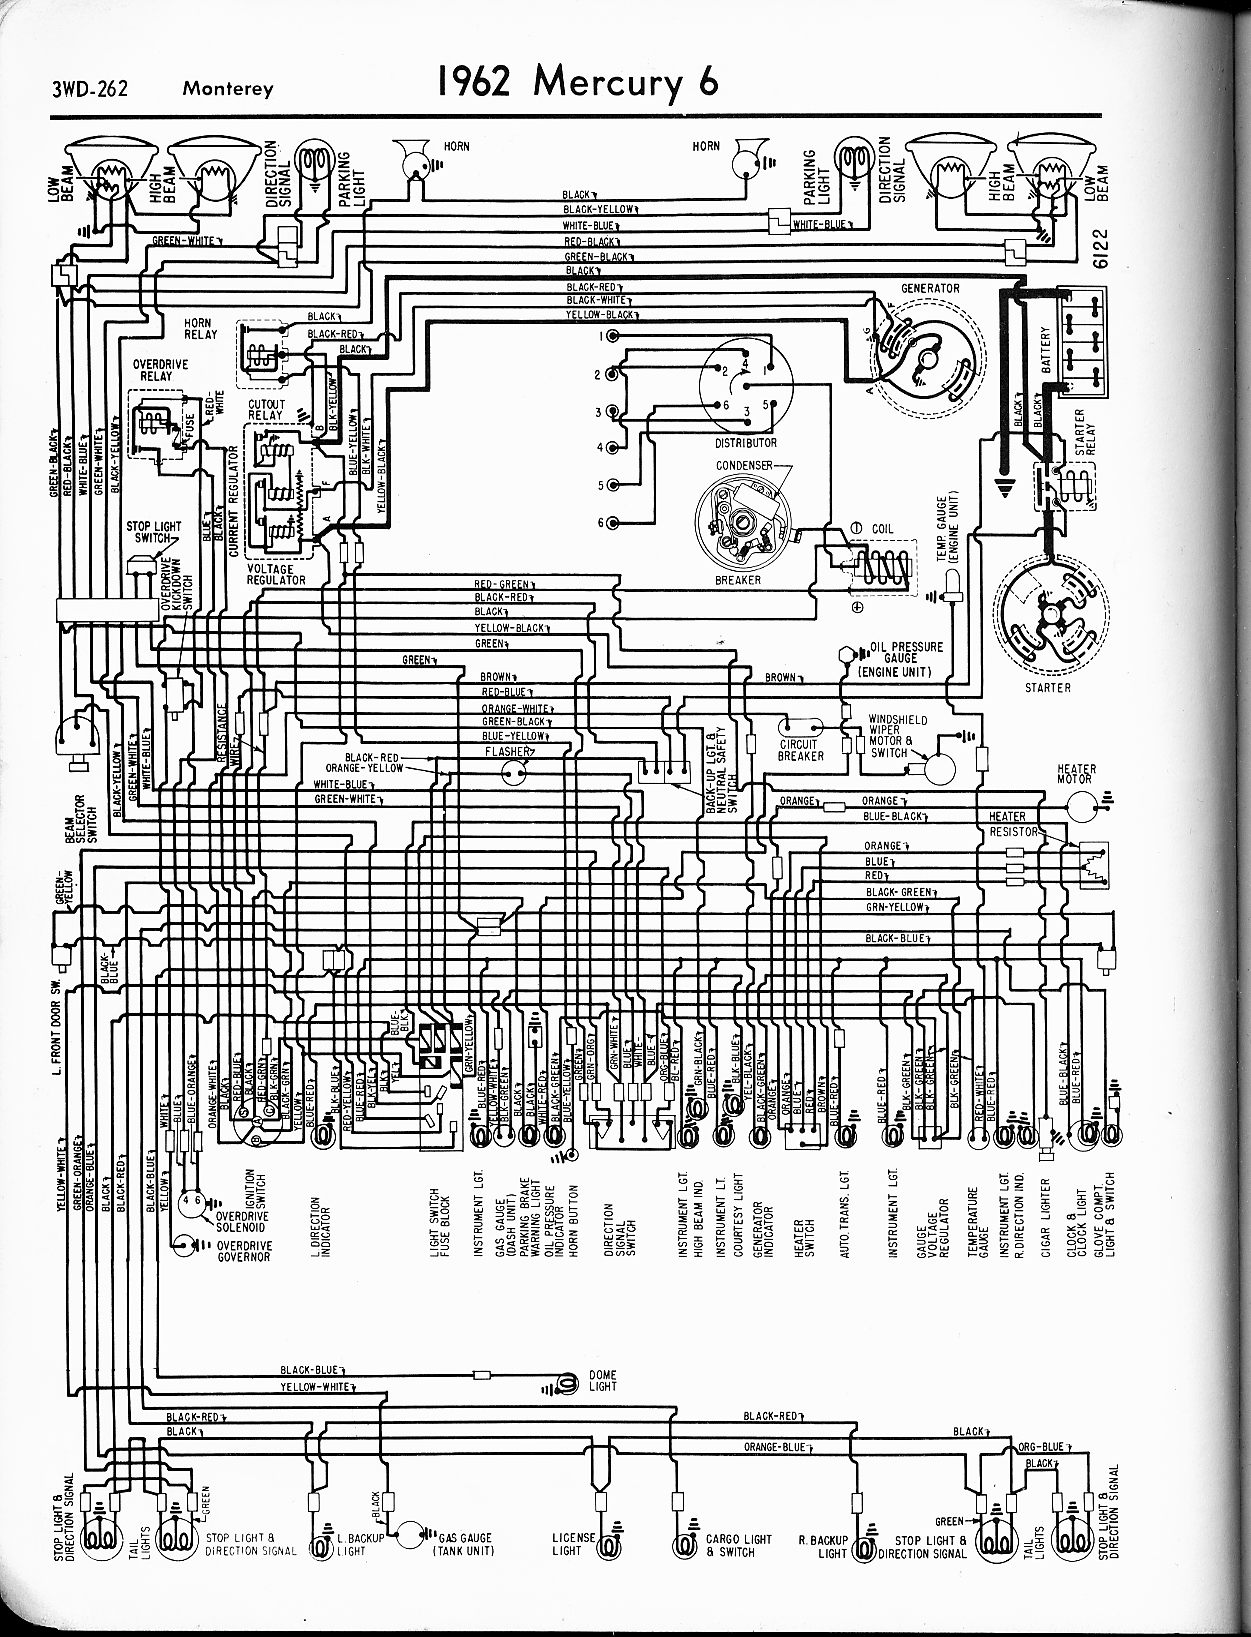 MWire5765 262 mercury wiring diagrams the old car manual project 1966 buick skylark wiring diagram at crackthecode.co